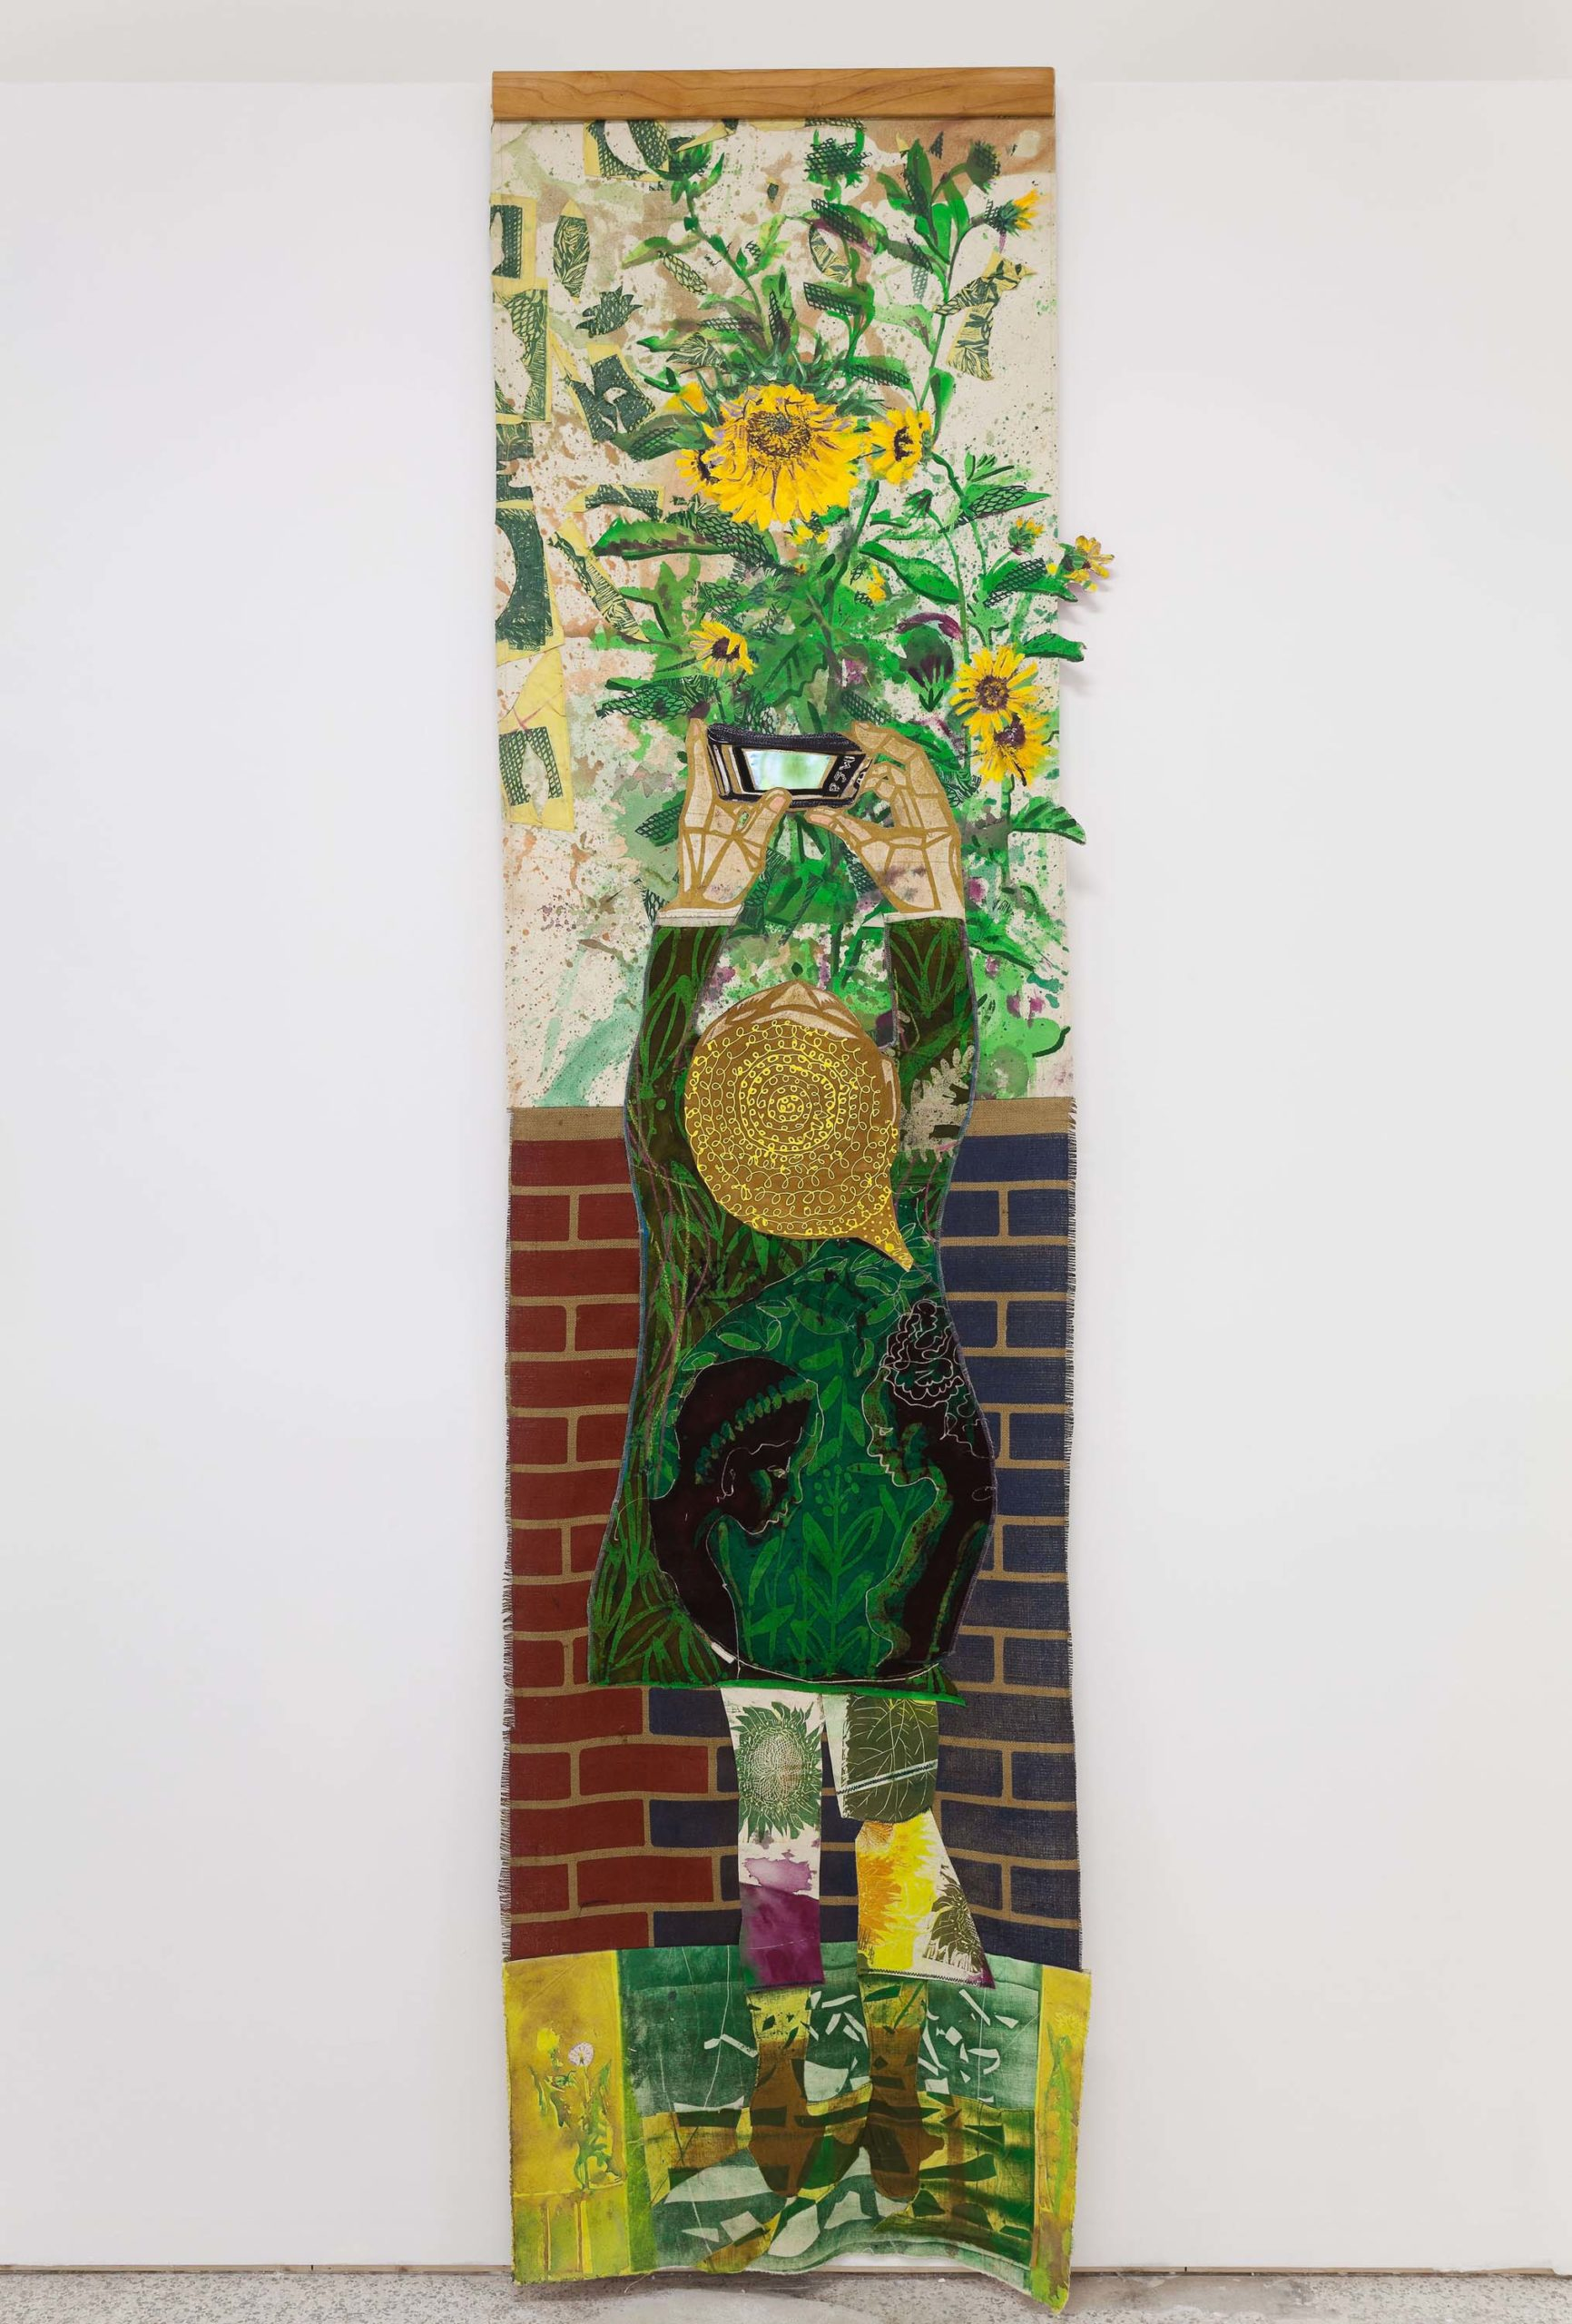 Paula Wilson, Sunflower, 2017